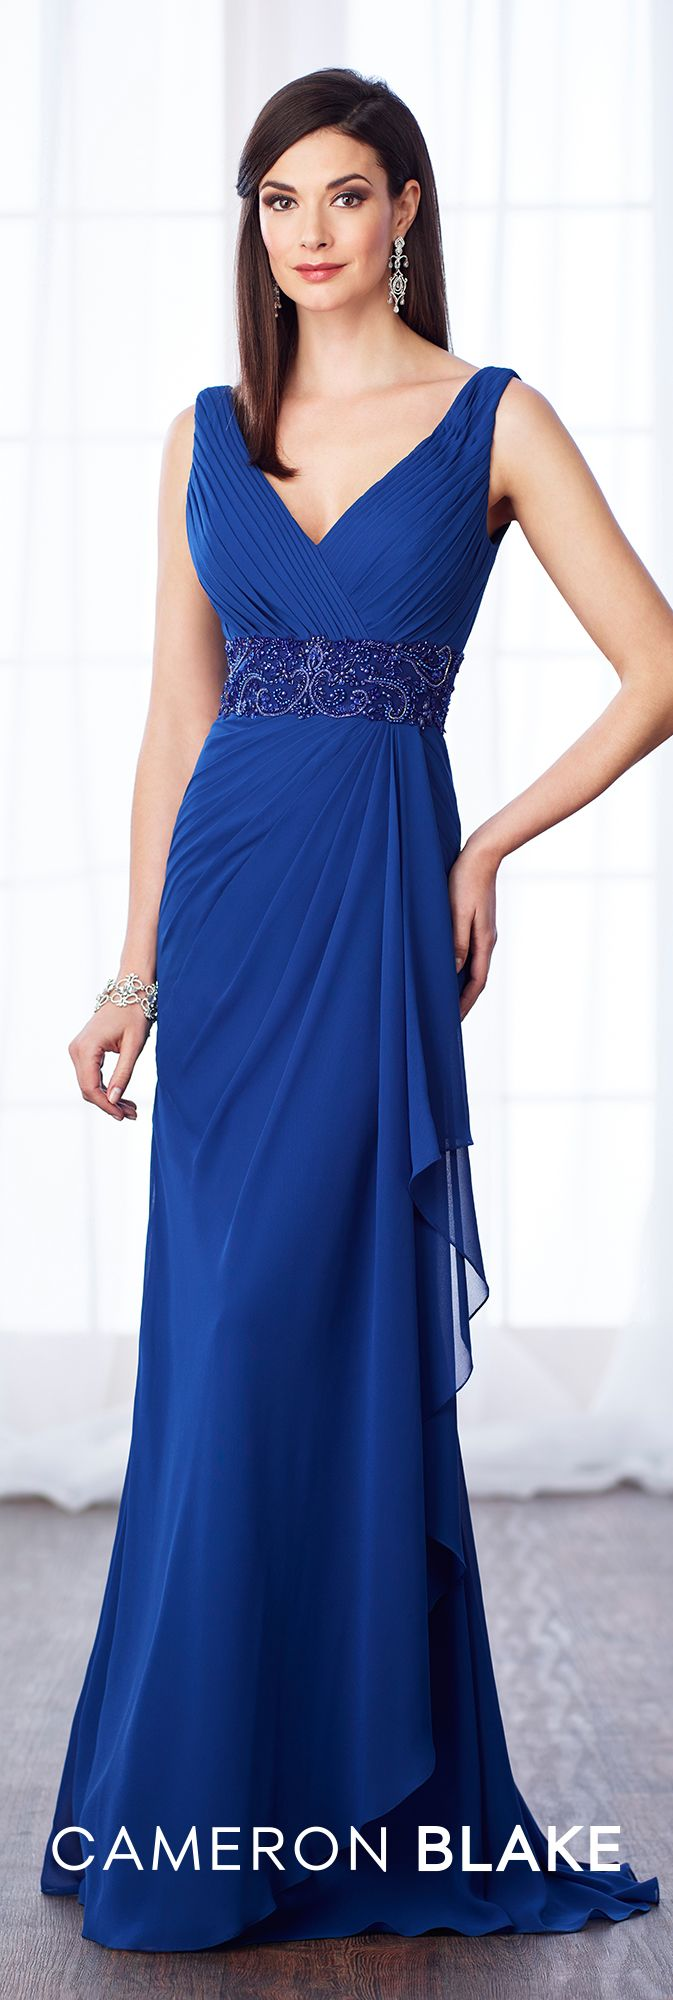 Formal Evening Gowns by Mon Cheri - Fall 2017 - Style No 217641 - royal blue sleeveless chiffon slim A-line evening dress